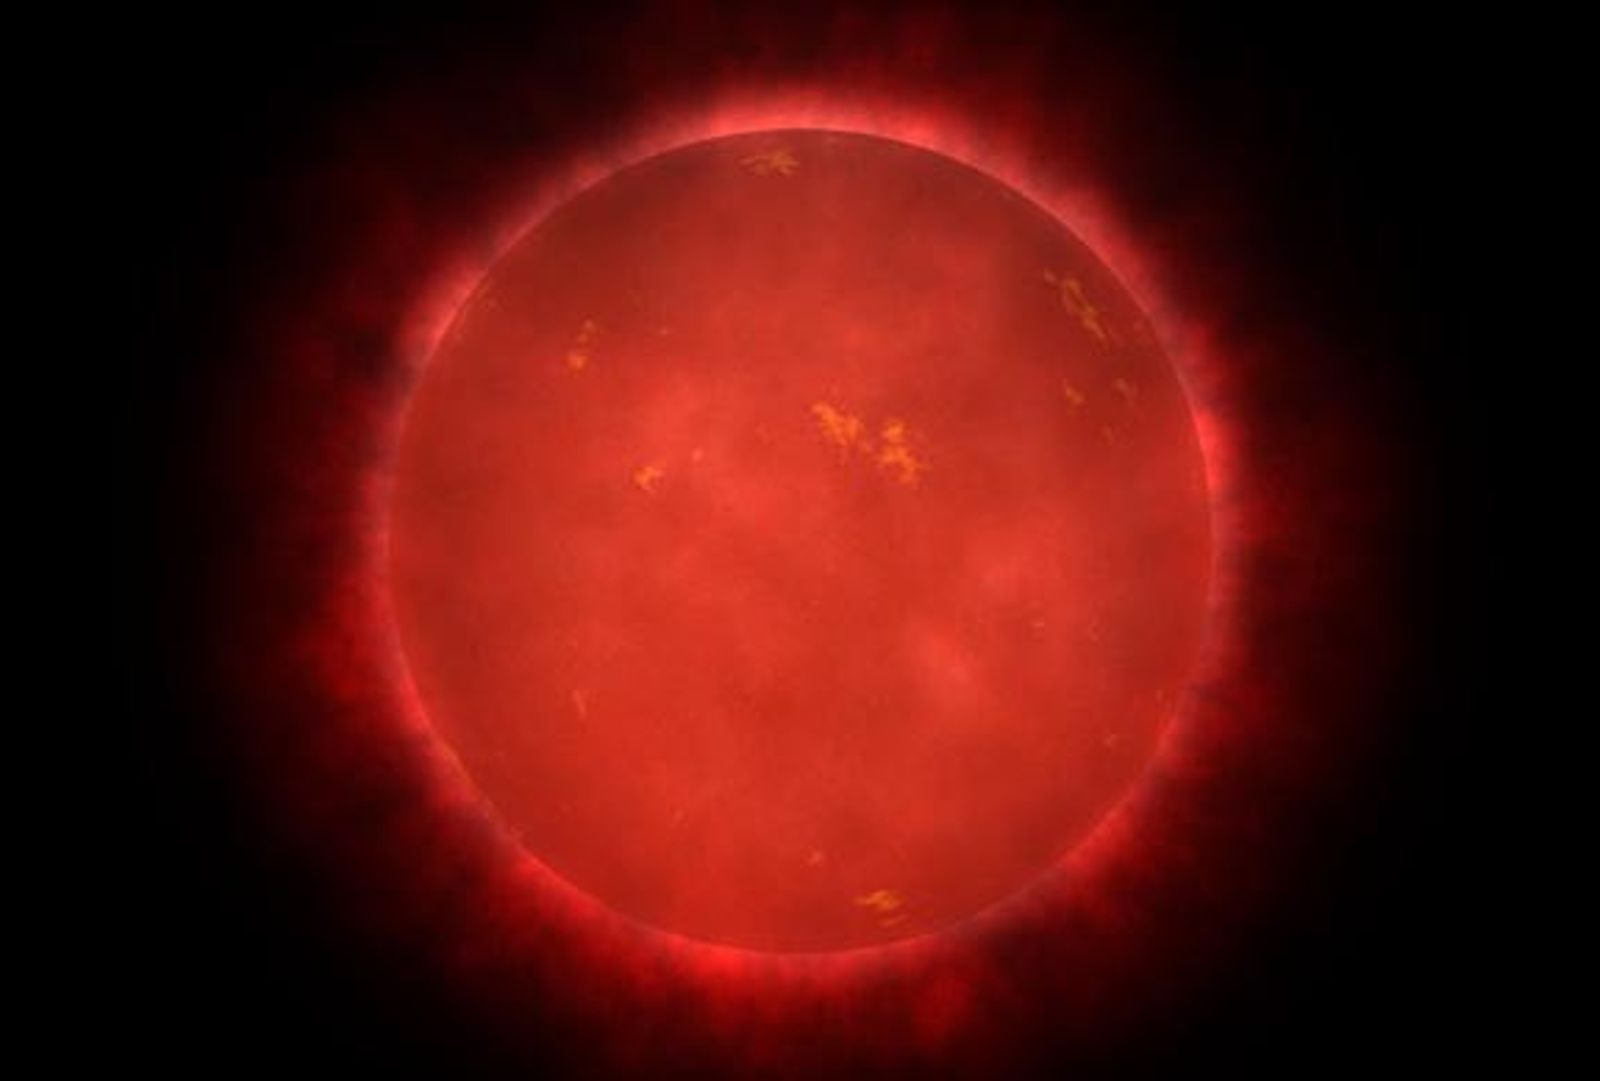 Two potentially life-friendly planets found orbiting a nearby star